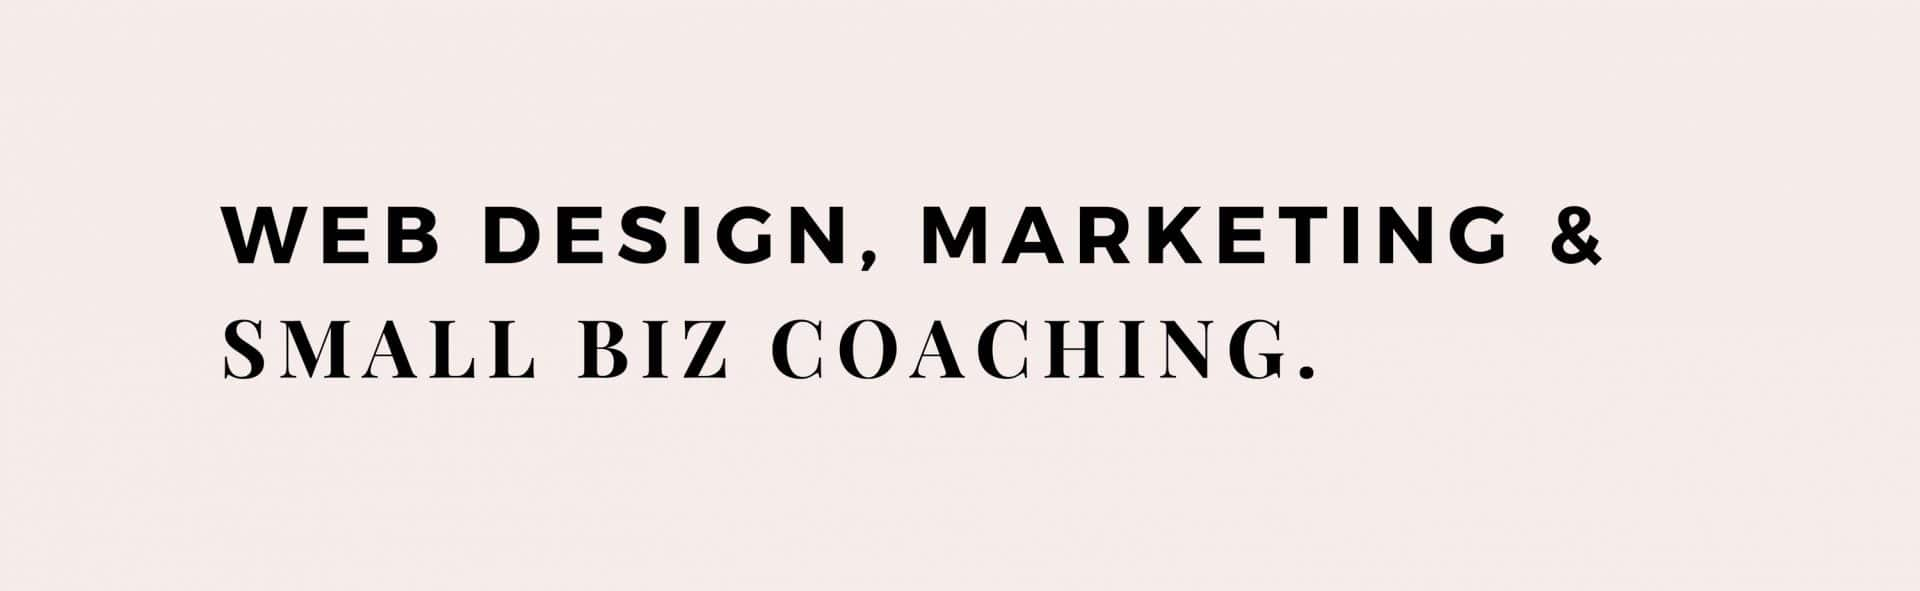 Small Business Coaching & Web Design Services | The Image Alkemist